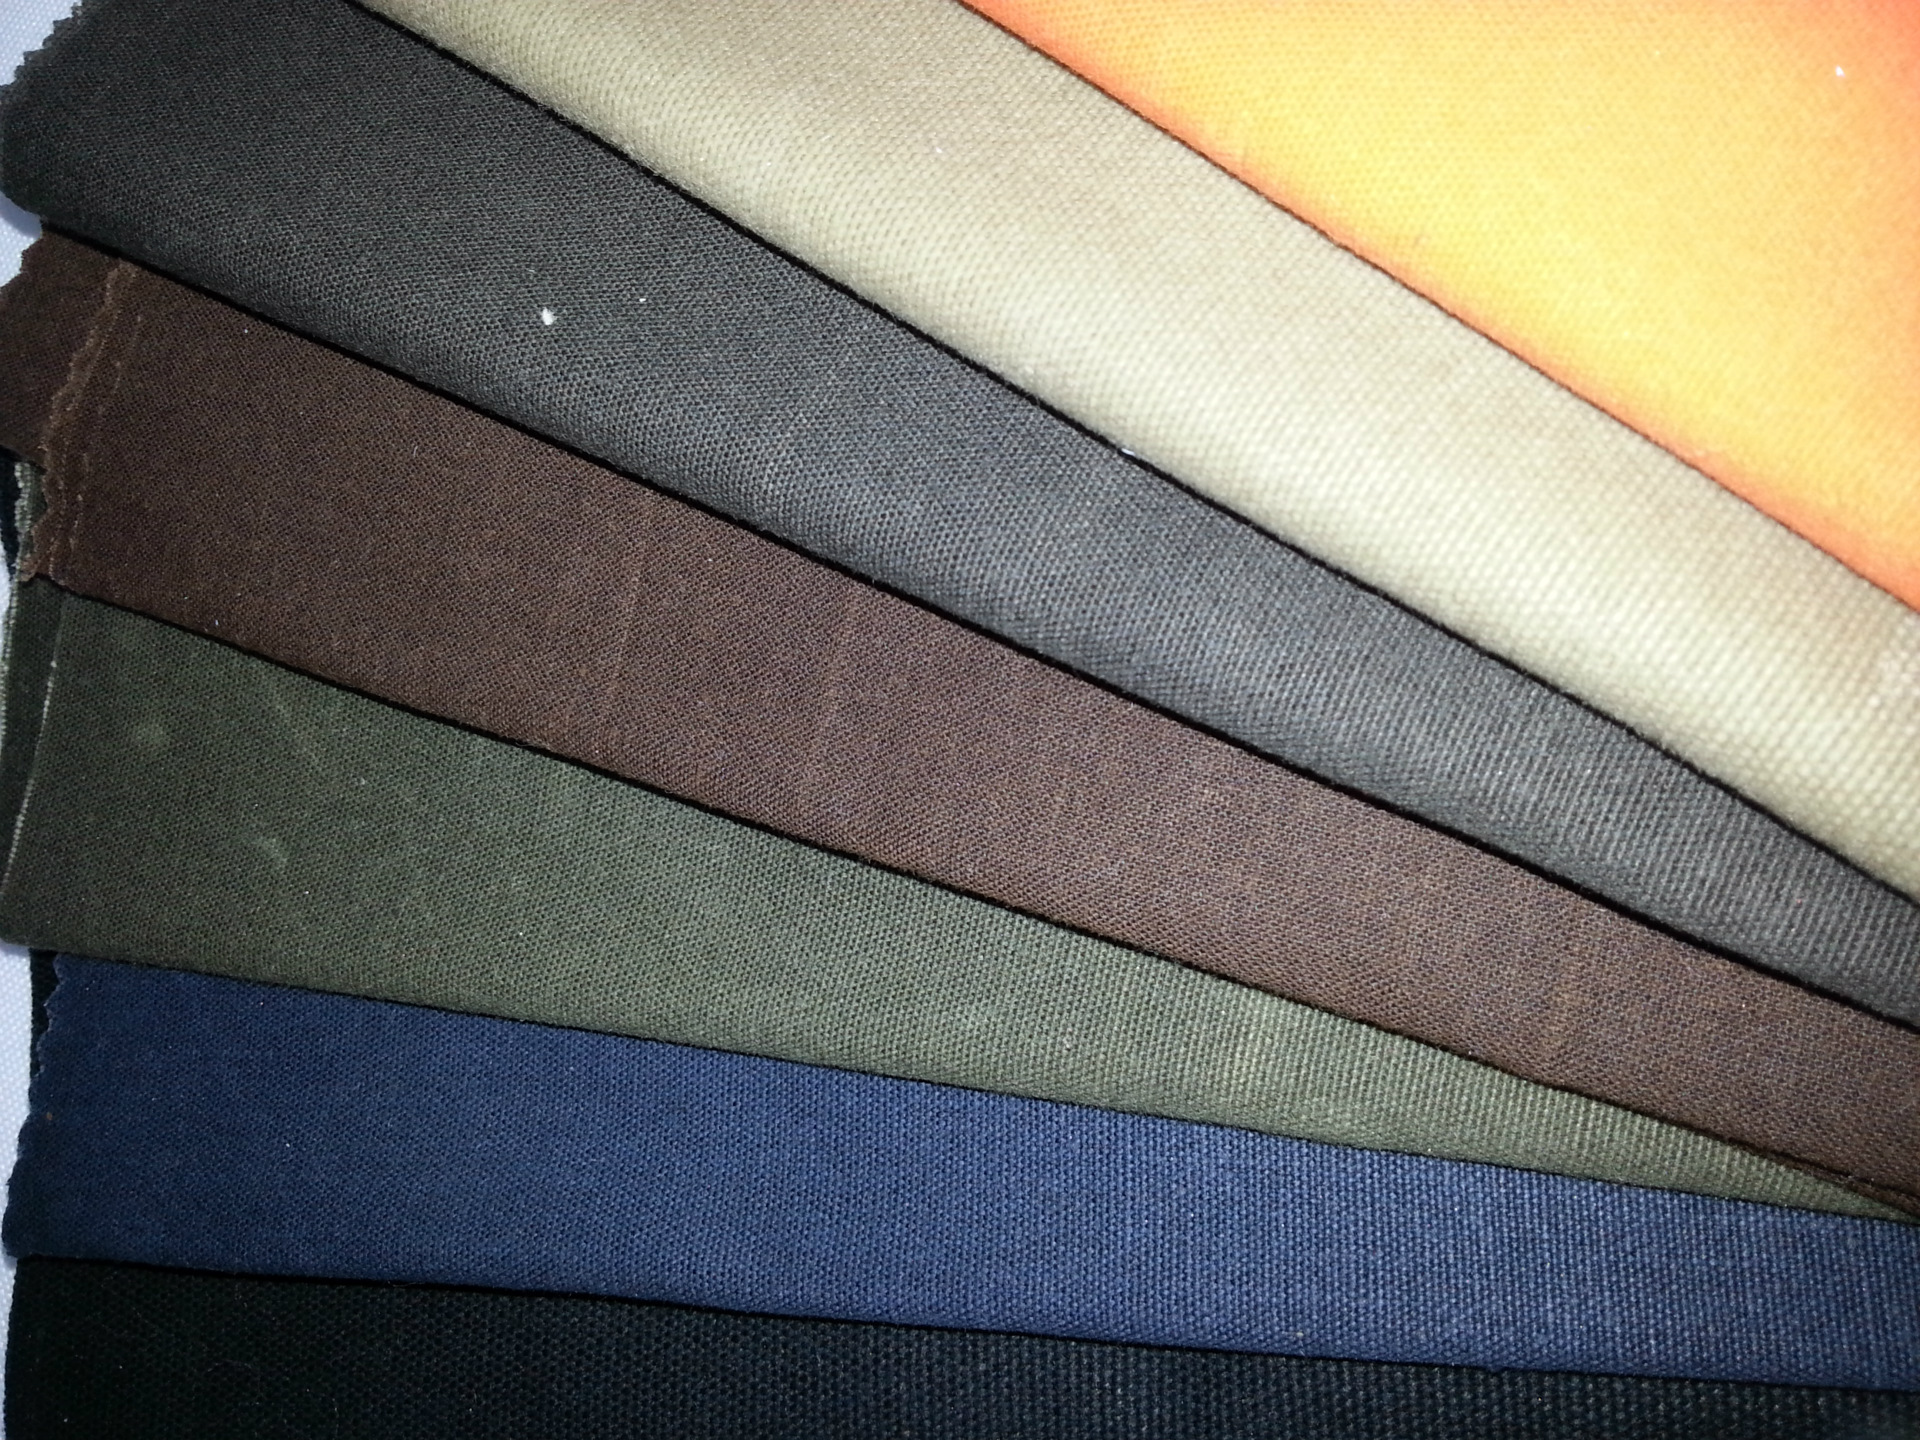 waxed coated canvas tarpaulin